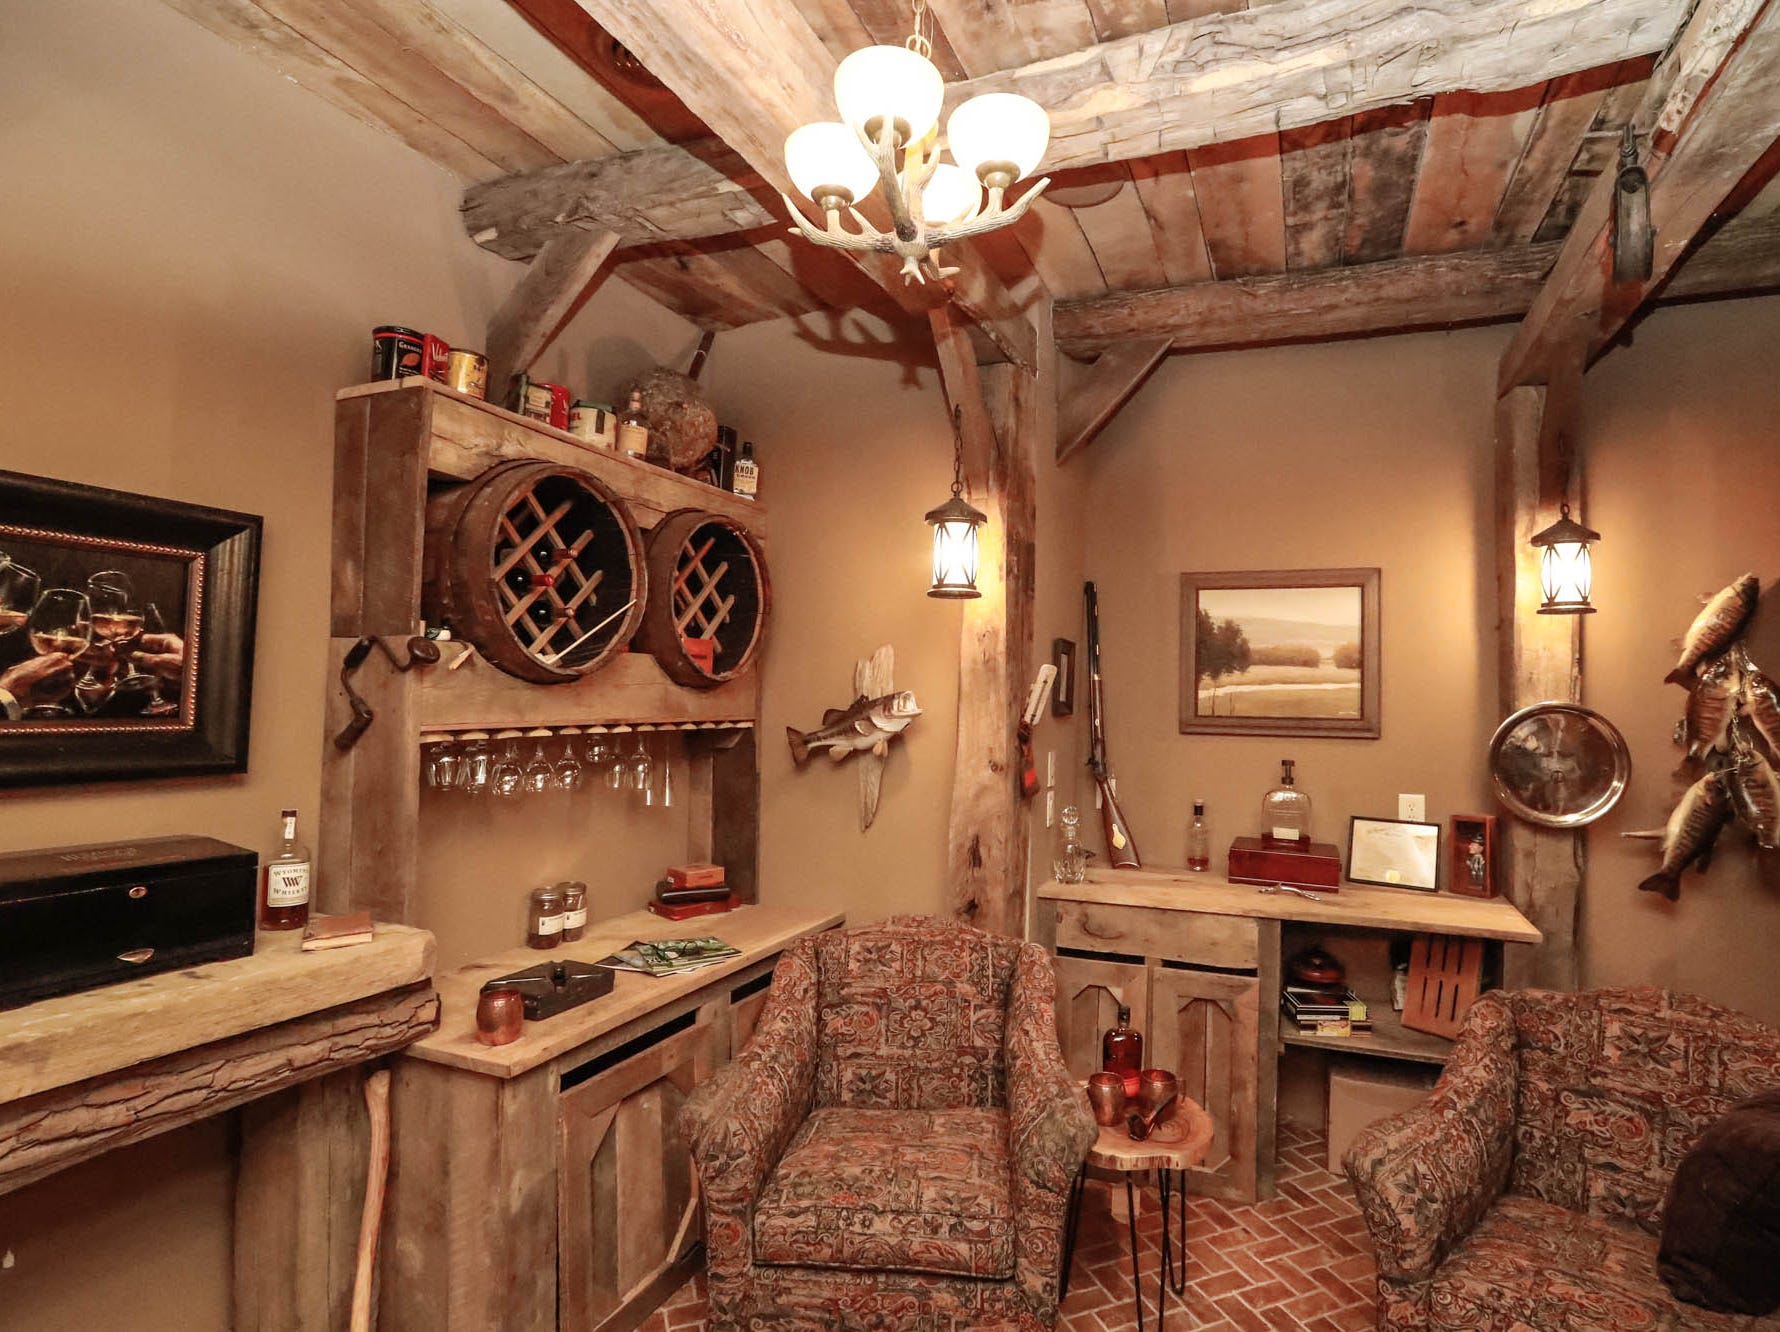 The basement of a traditional $2m home up for sale in Bargersville Ind., features with elements of French country and Tuscan influence including a cigar or wine room with brick flooring and beams from a 100-year-old barn, on Wednesday, Jan. 9, 2019. The home sits on 8.1 acres.